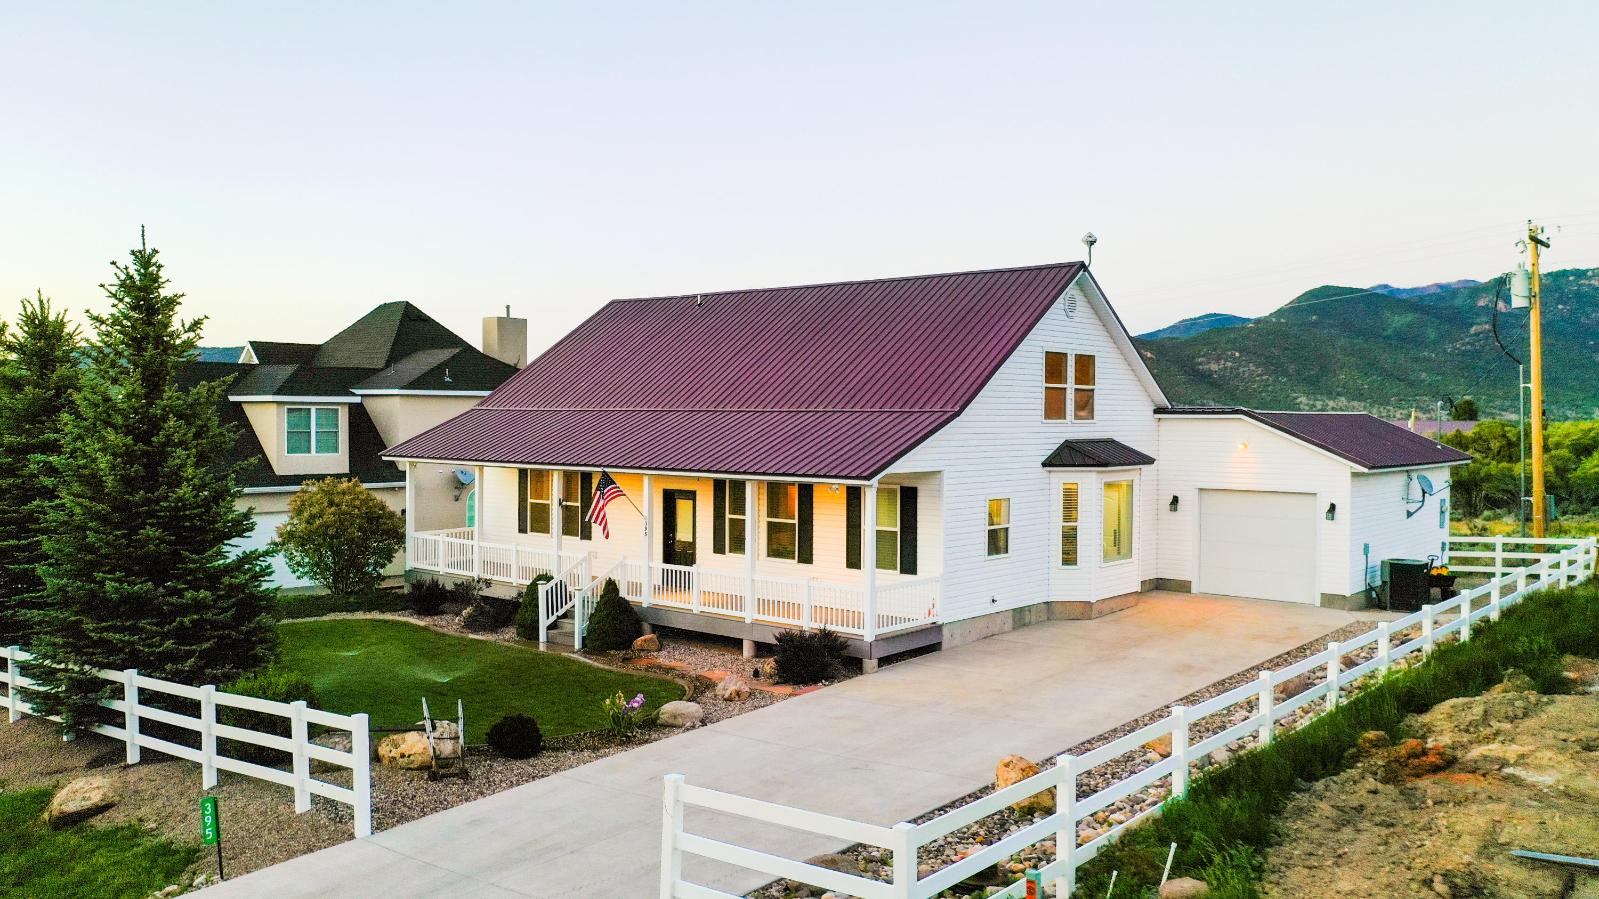 Local Real Estate — Coldwell Banker Premier Realty